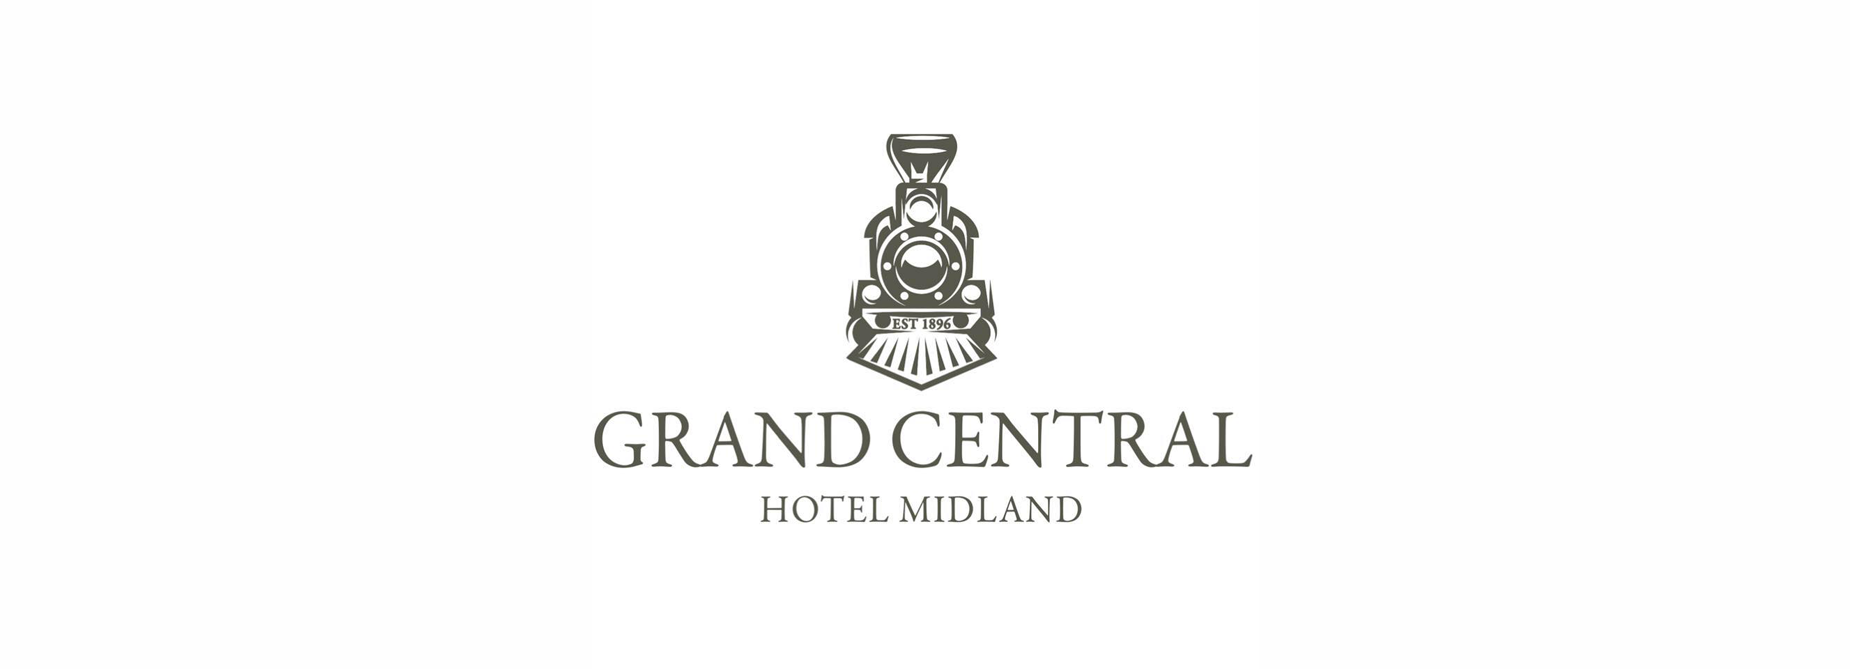 The Grand Central Hotel Midland Logo